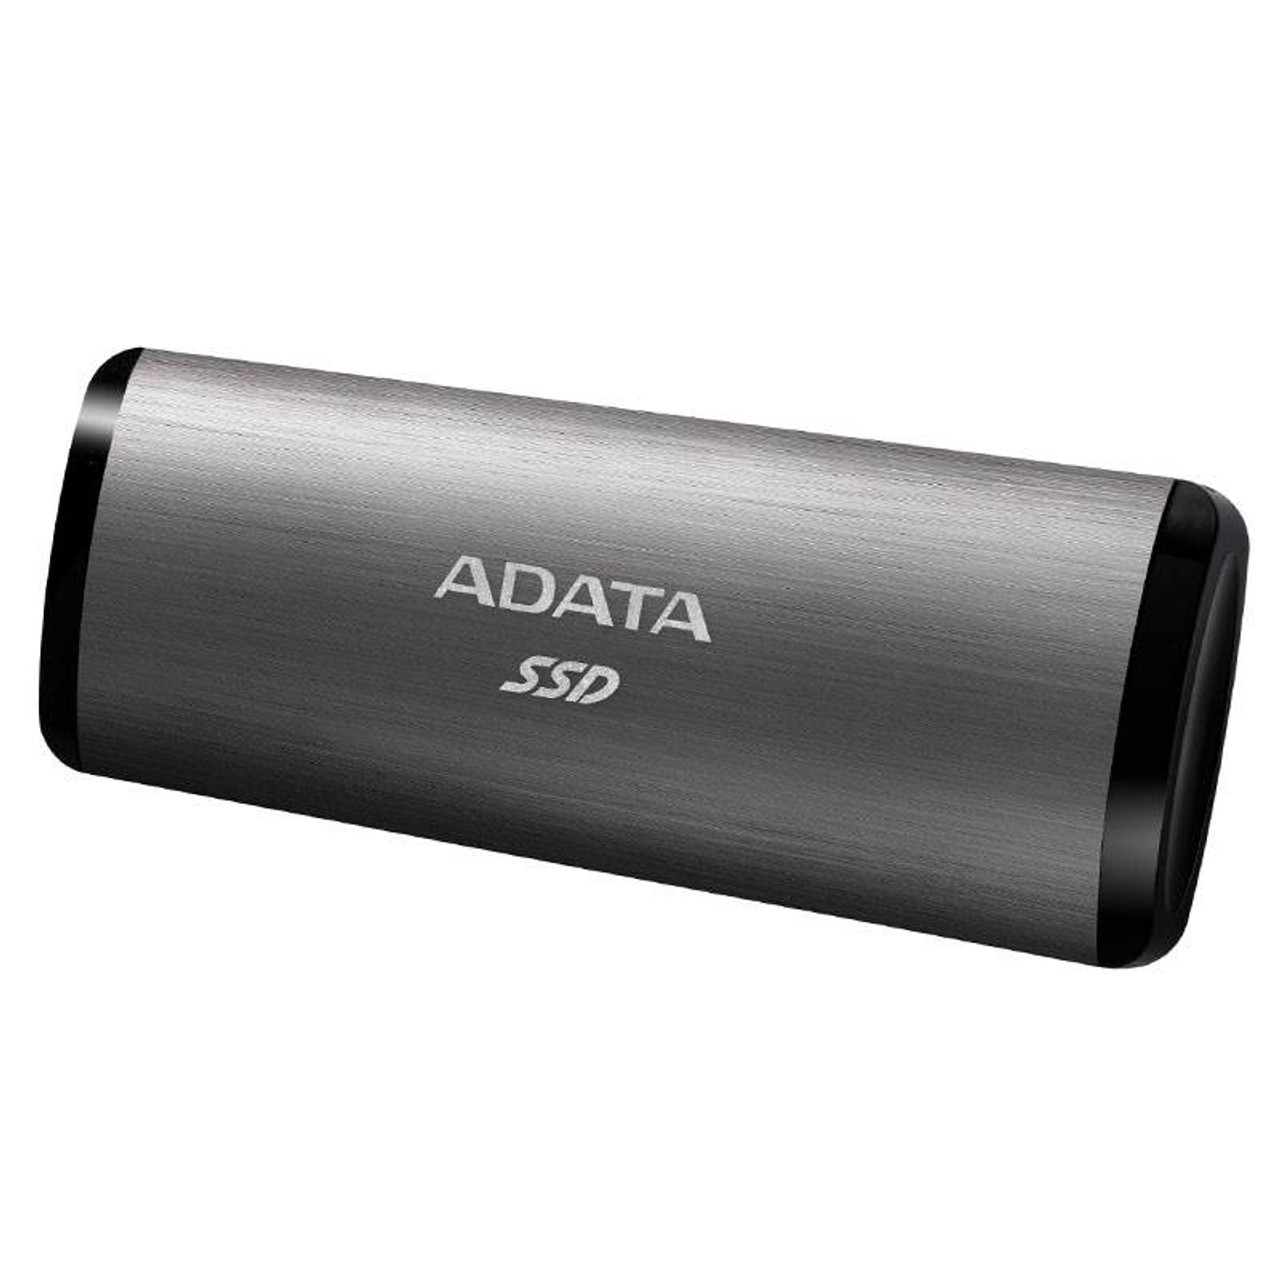 Image for Adata SE760 1TB USB 3.1 Type-C Portable External SSD Hard Drive - Titanium CX Computer Superstore